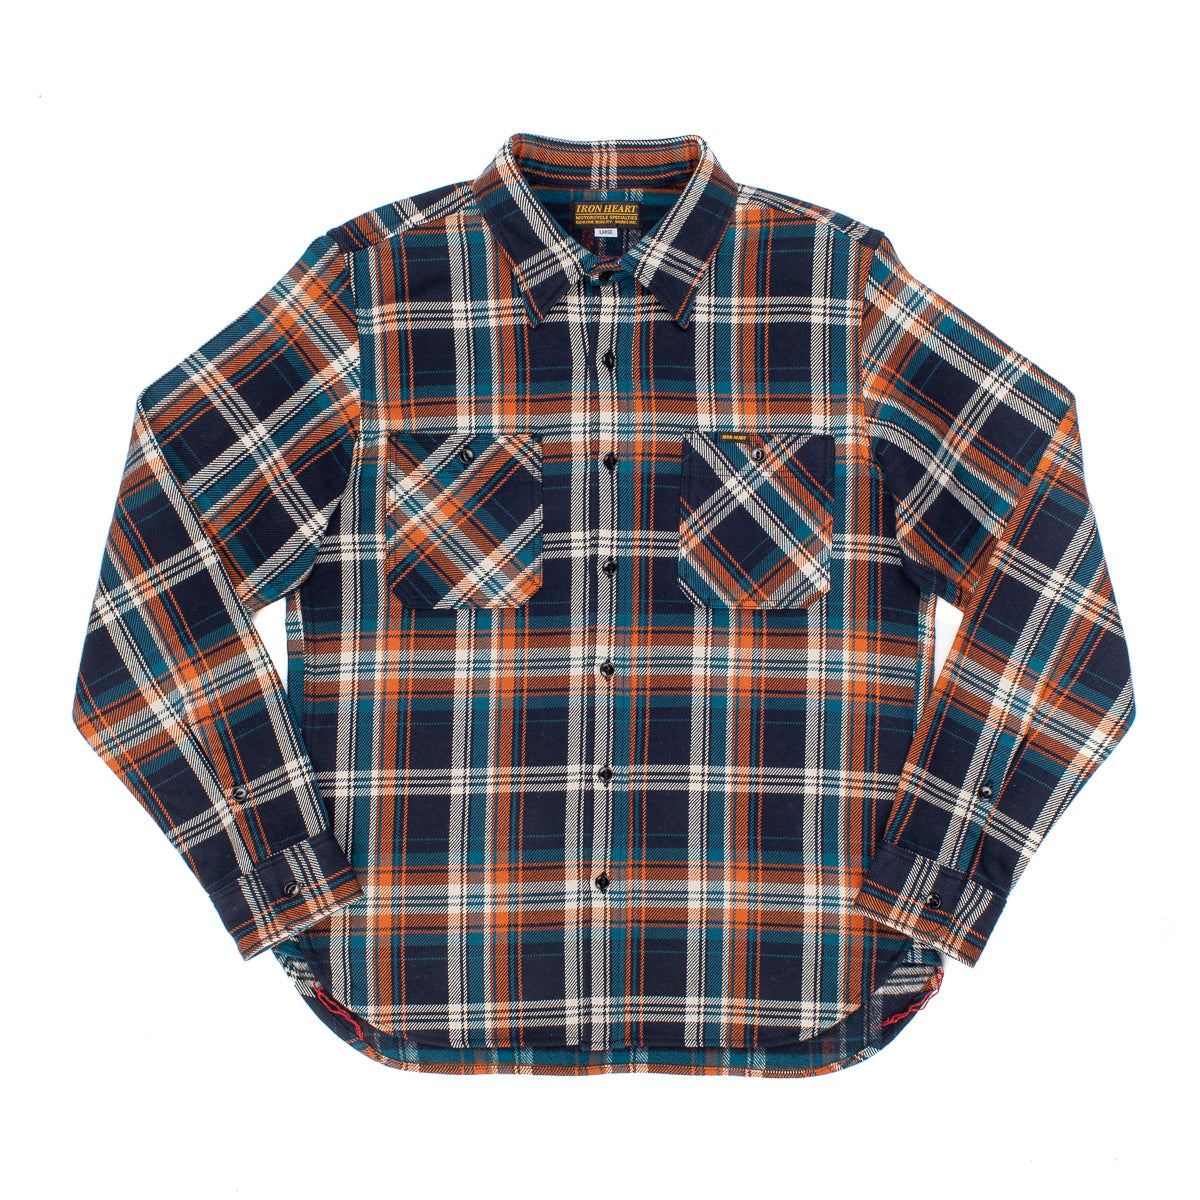 IHSH-263 - Heavy Flannel Work Shirt Navy/ Ivory